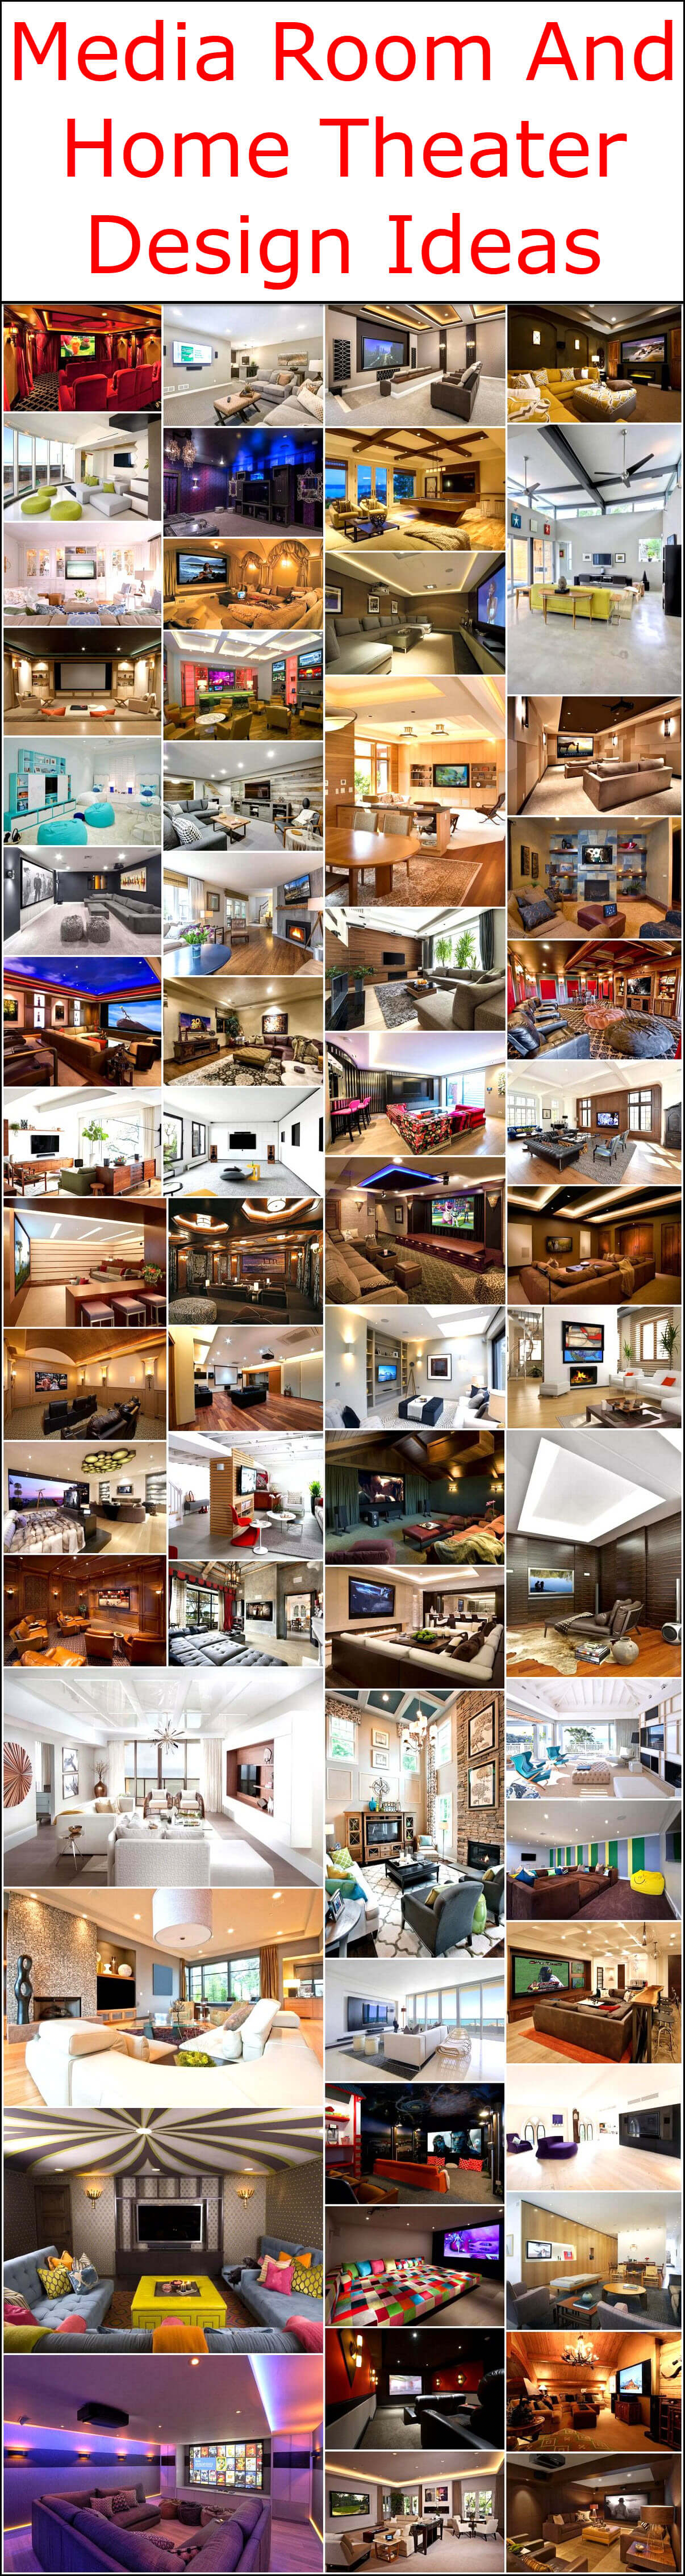 Designing Home Media Room And Home Theater Design Ideas Interior Designing Home